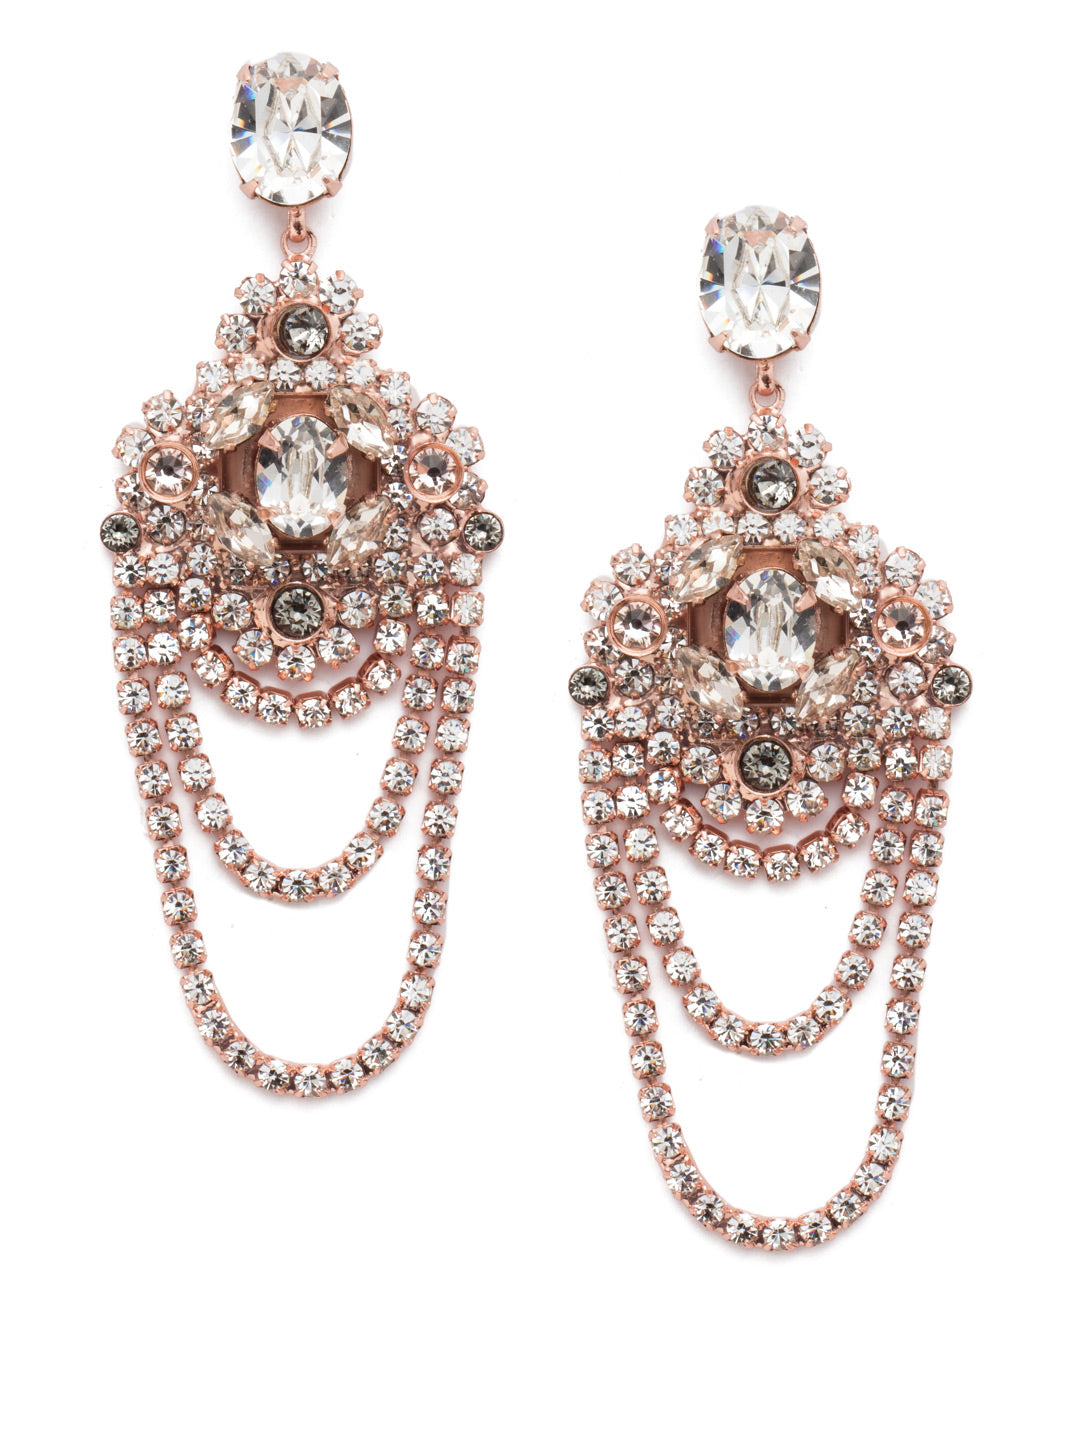 Crystal Chandelier Earrings Statement Earring - EBP49RGSNB